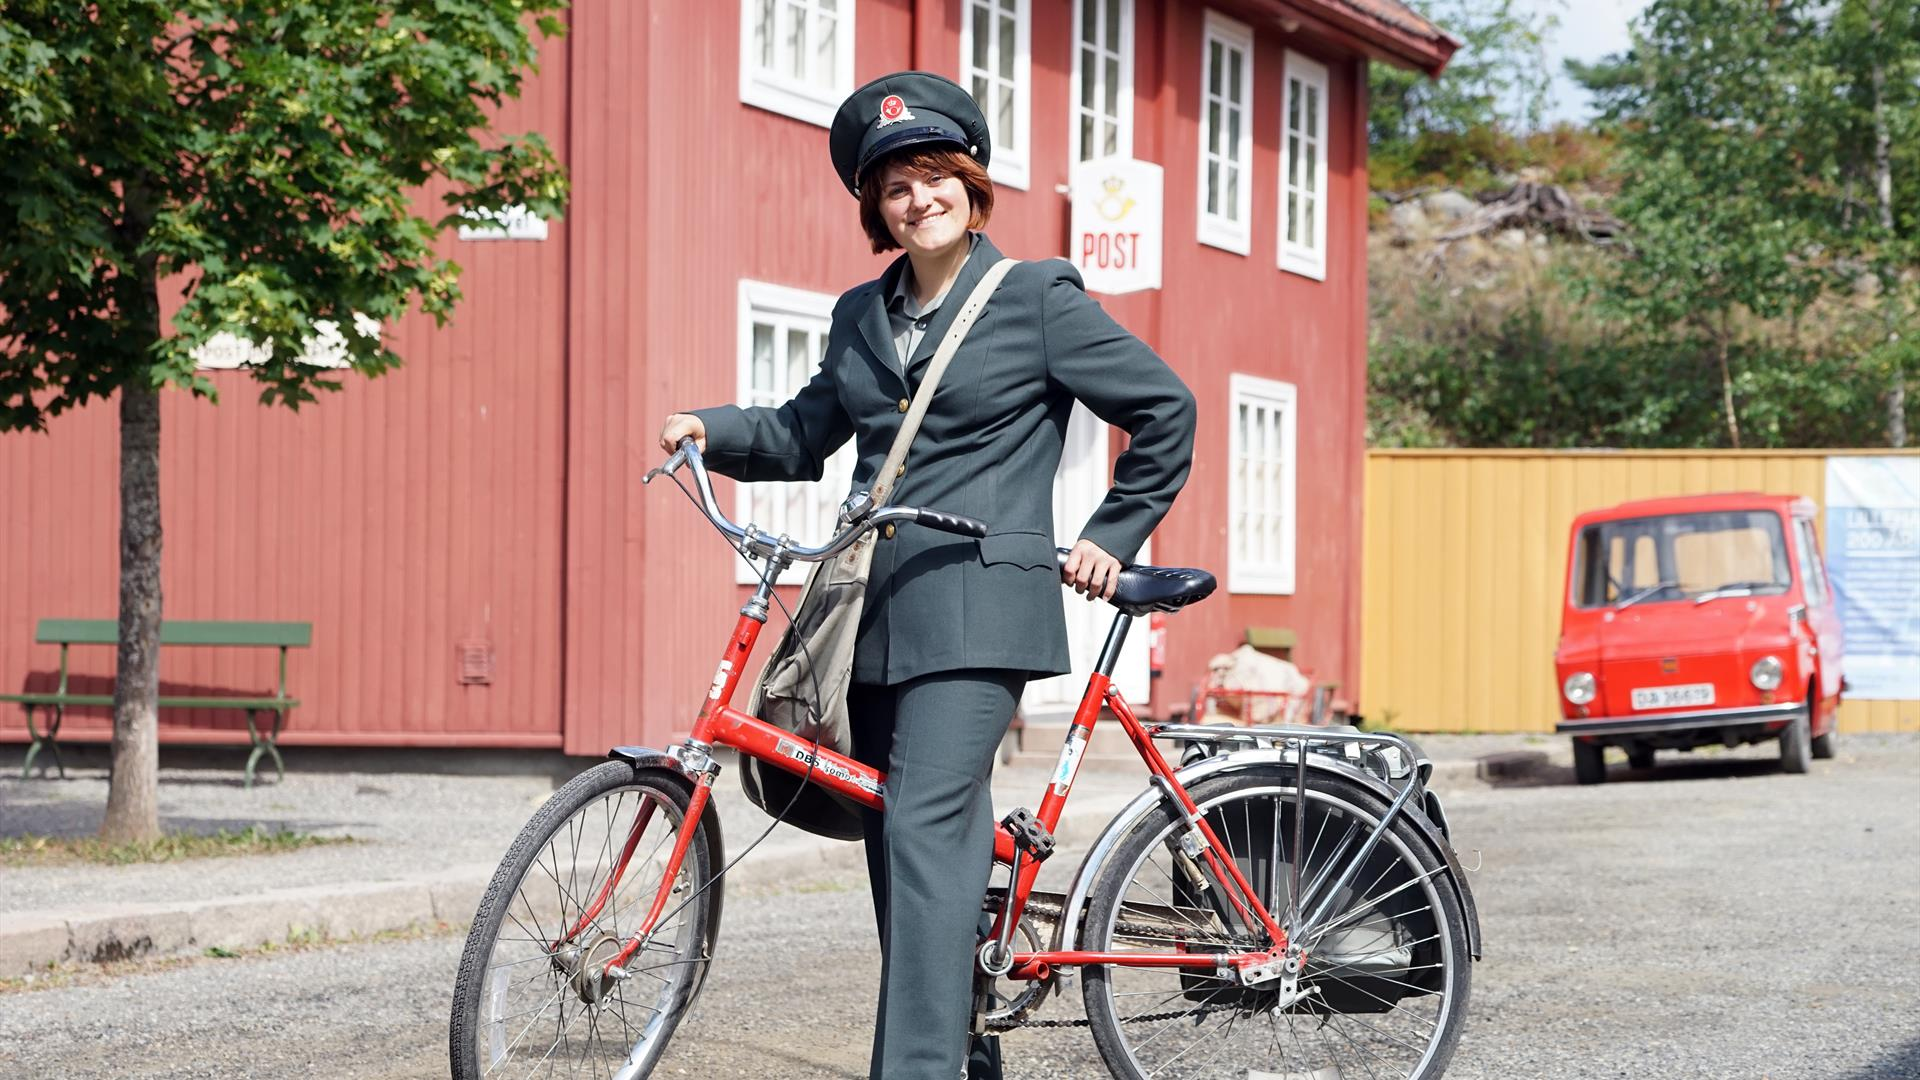 Post woman in historical uniform in front of the Postal Museum at Maihaugen.